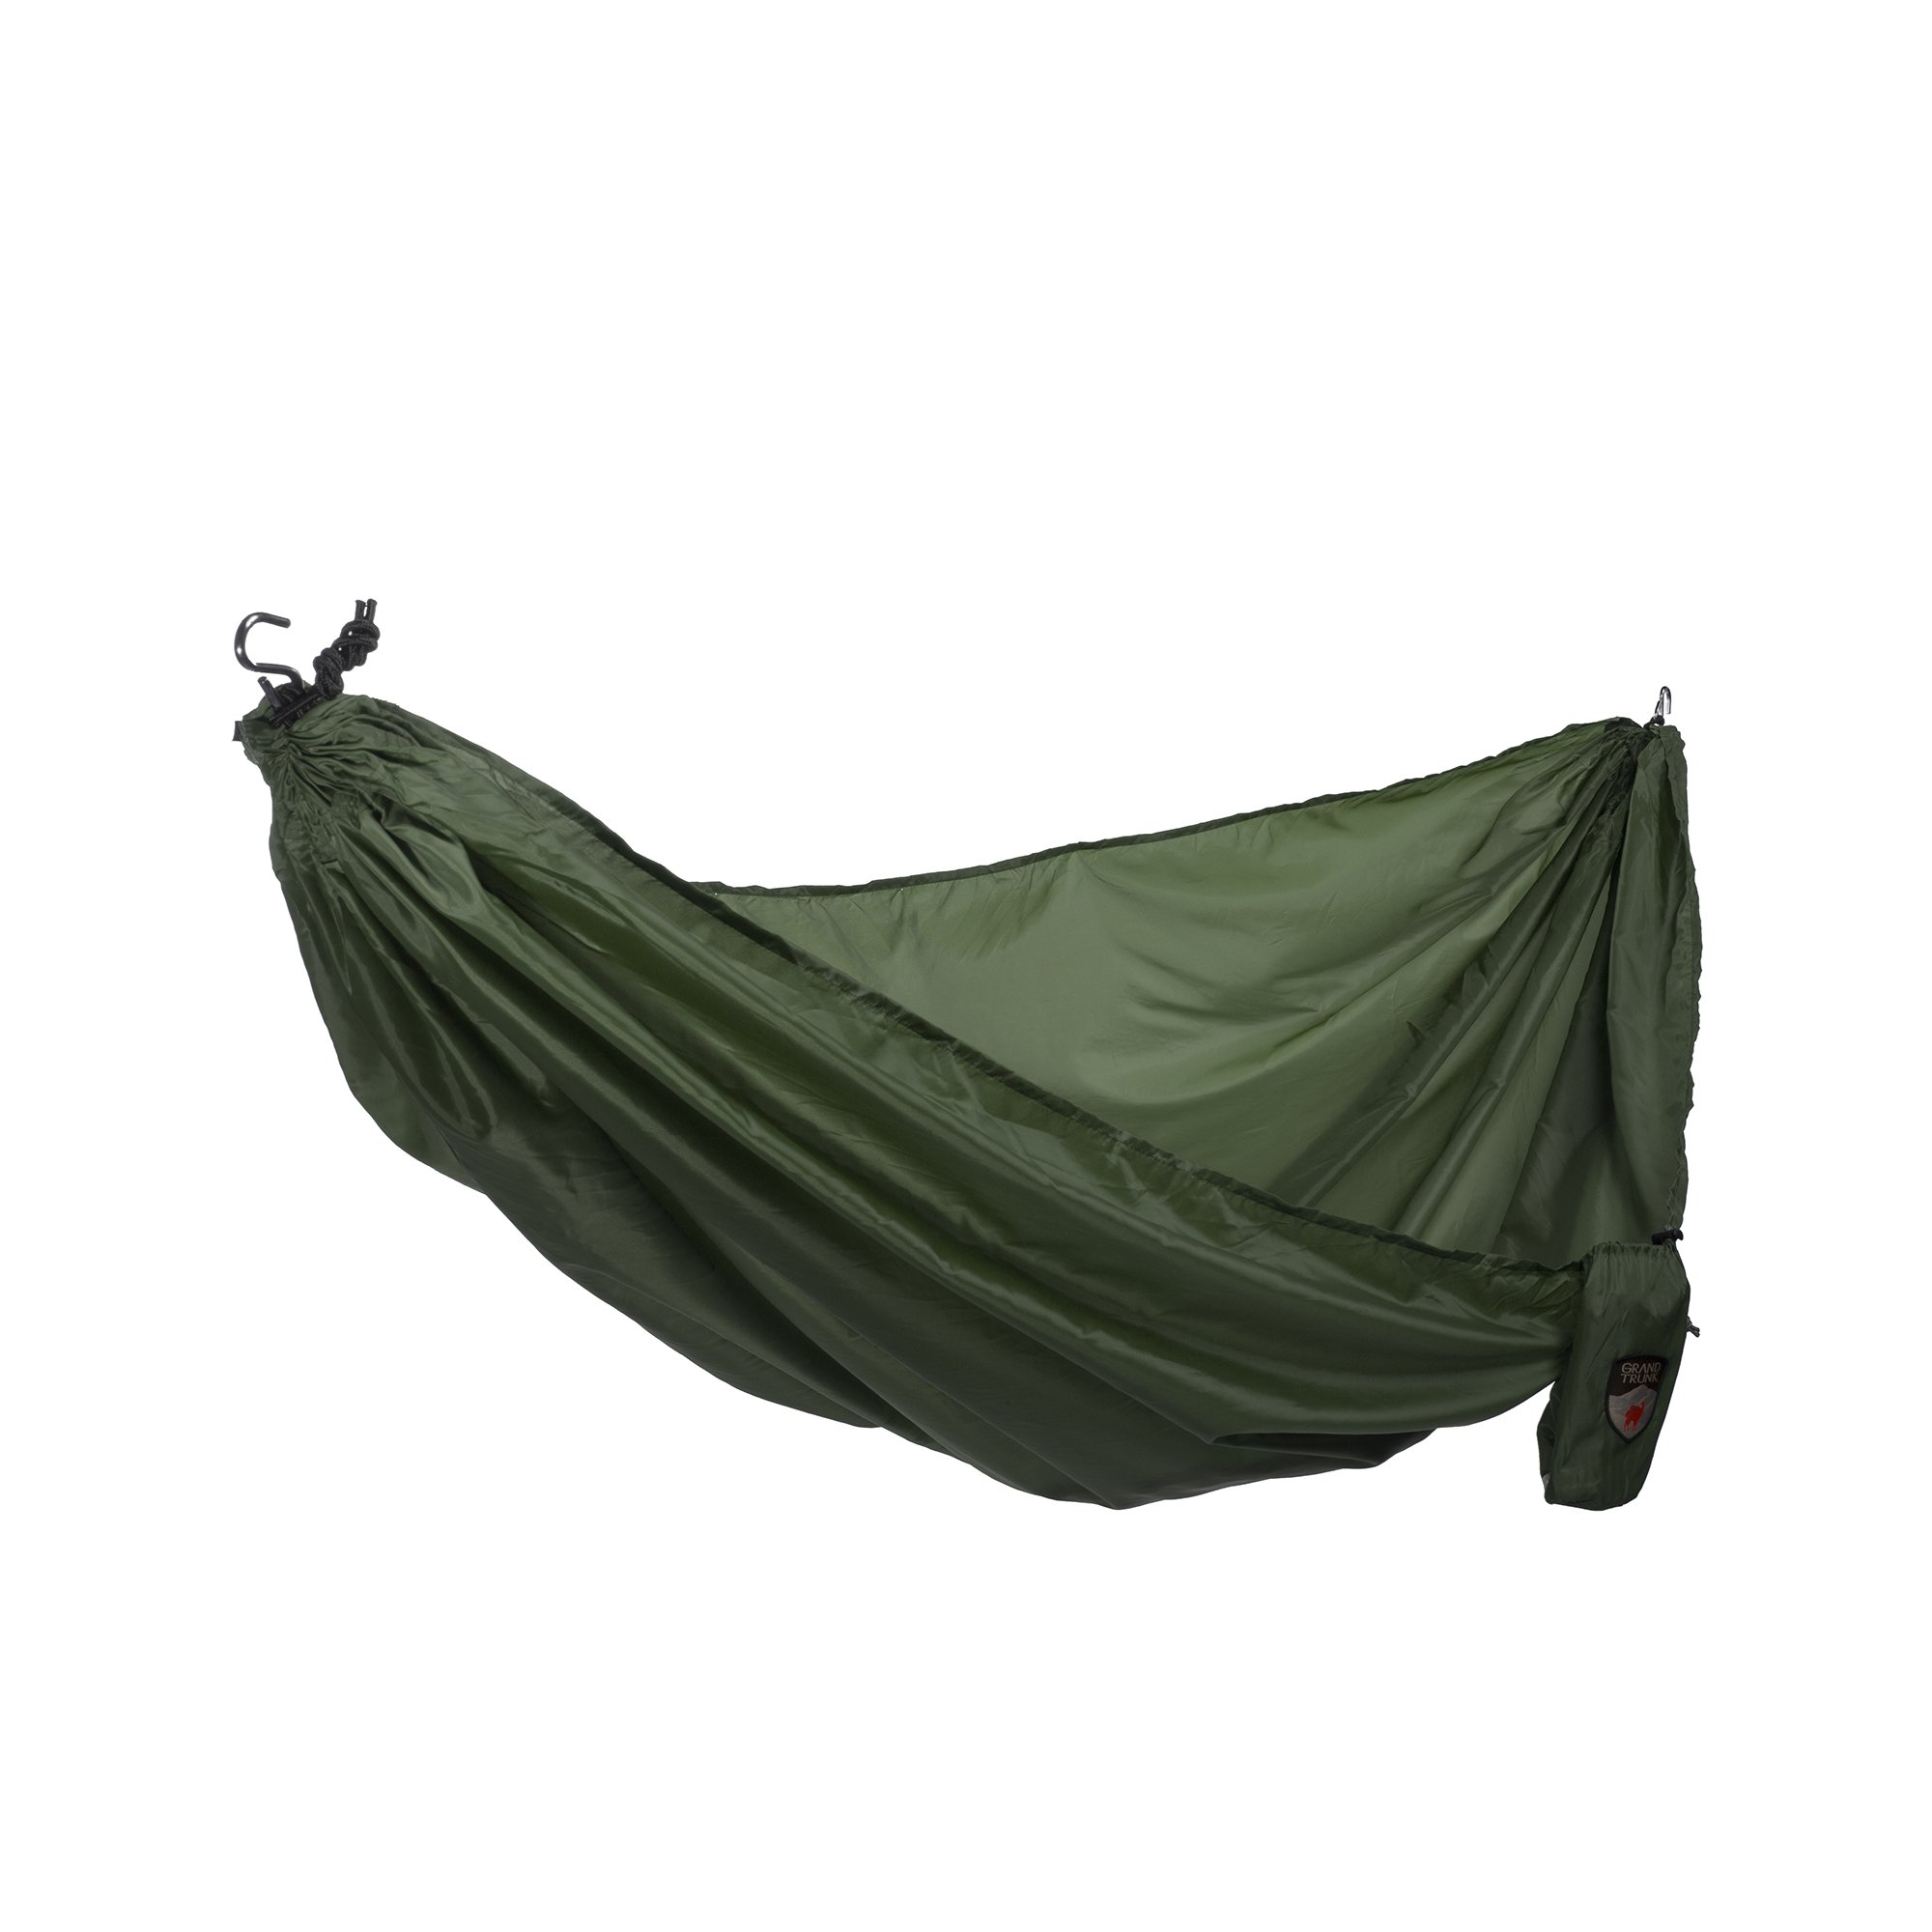 Grand Trunk Hammock Ultralight Forest Green Travel Camping